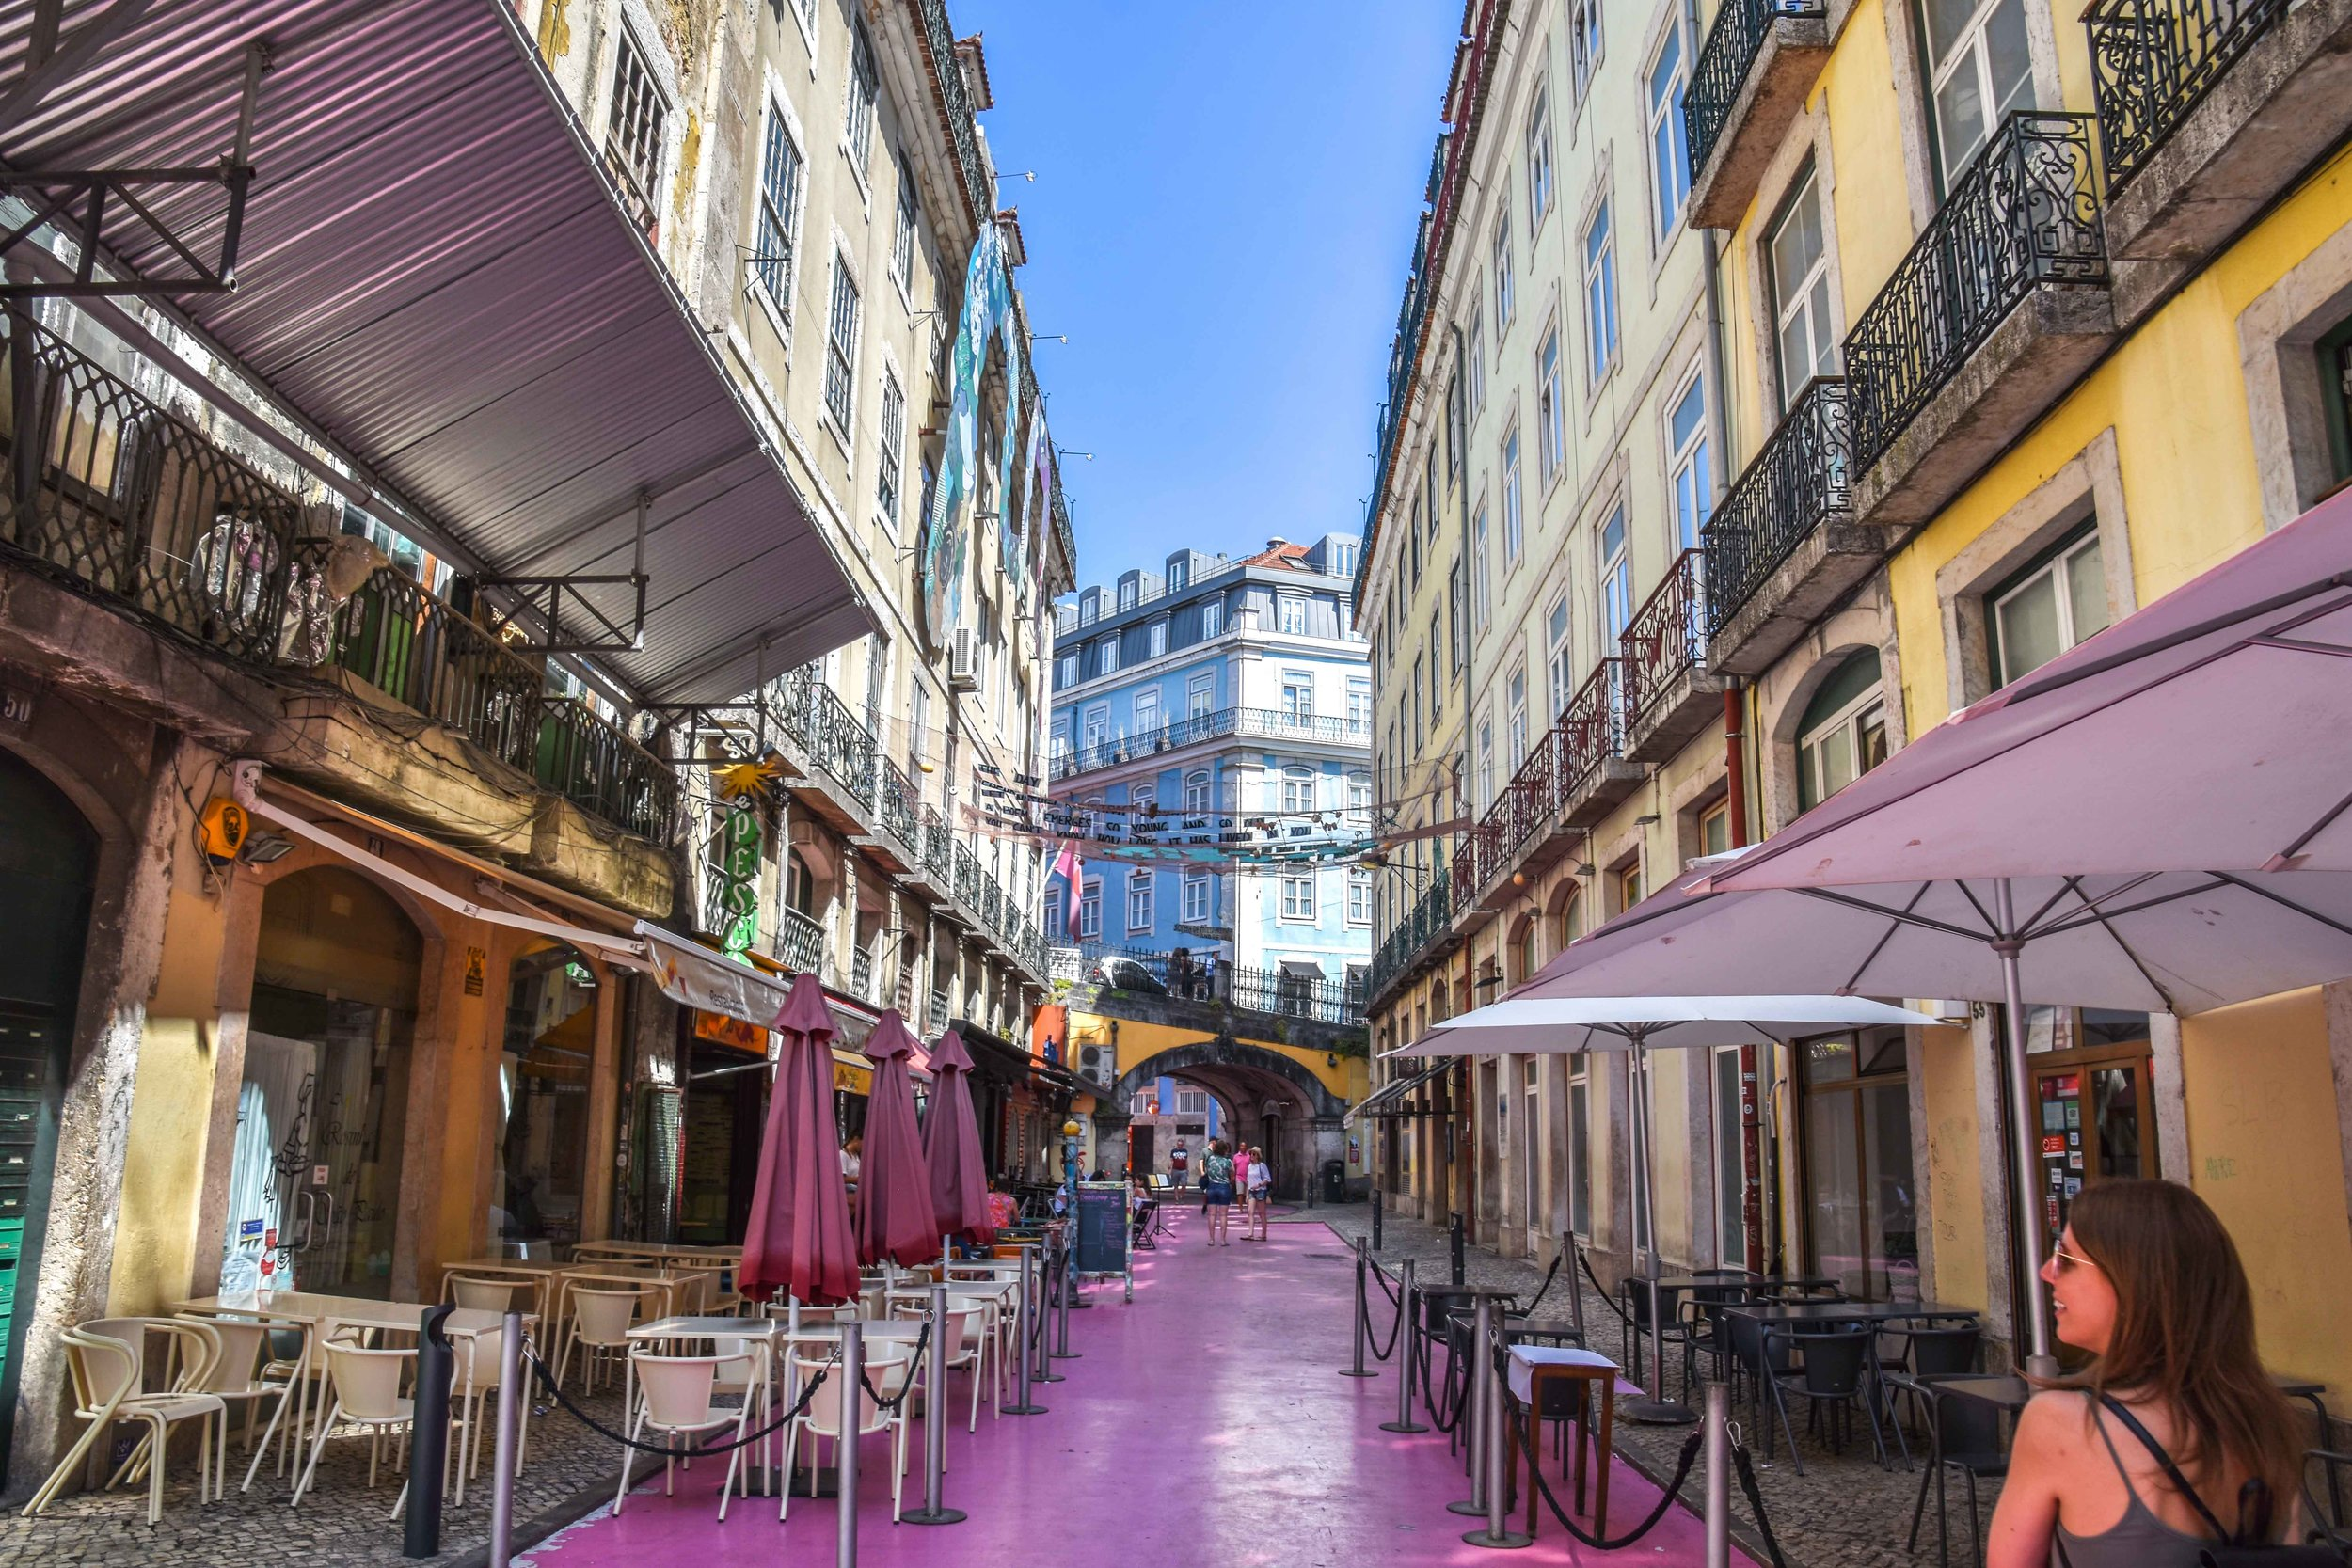 The pink streets of Lisbon.